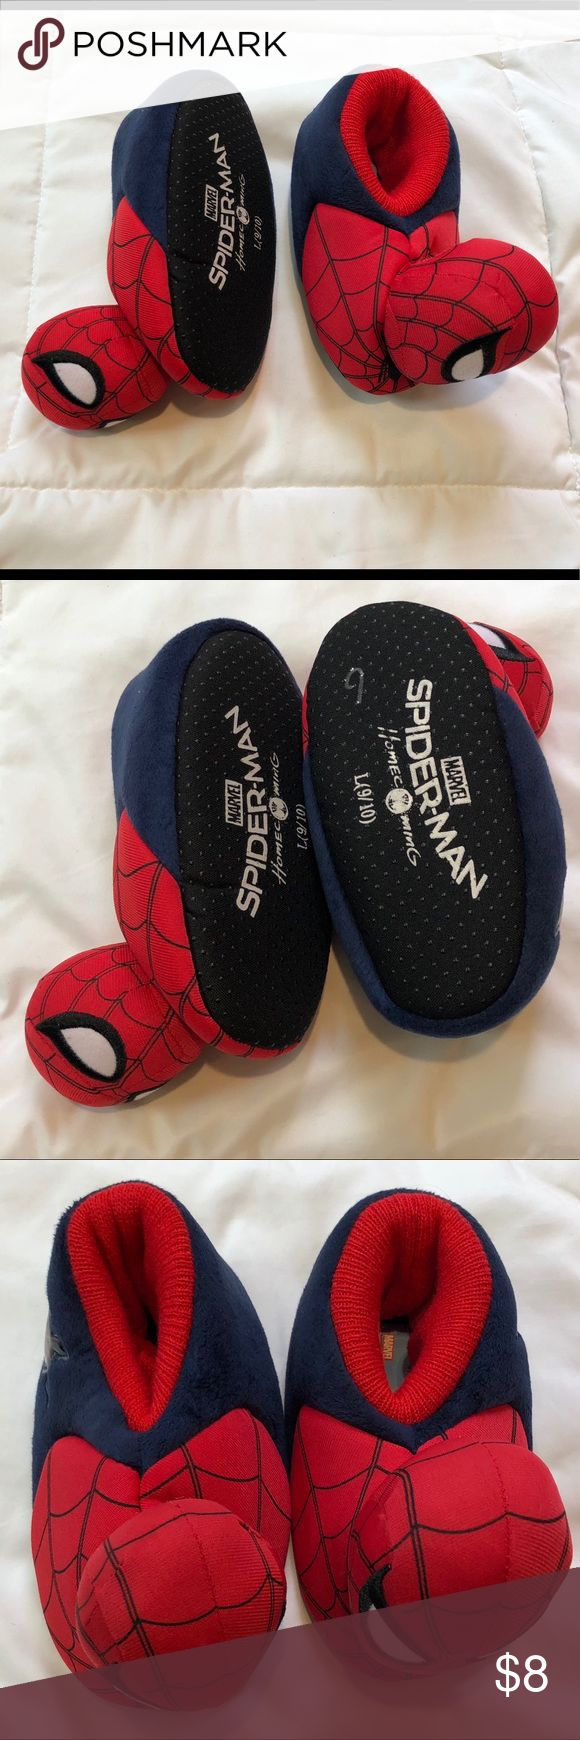 5/$25 Spider Man Toddler House Slippers 9/10 NWOT Spider Man House slippers Tags were pulled off  Never worn Size 9/10 Marvel Shoes Slippers